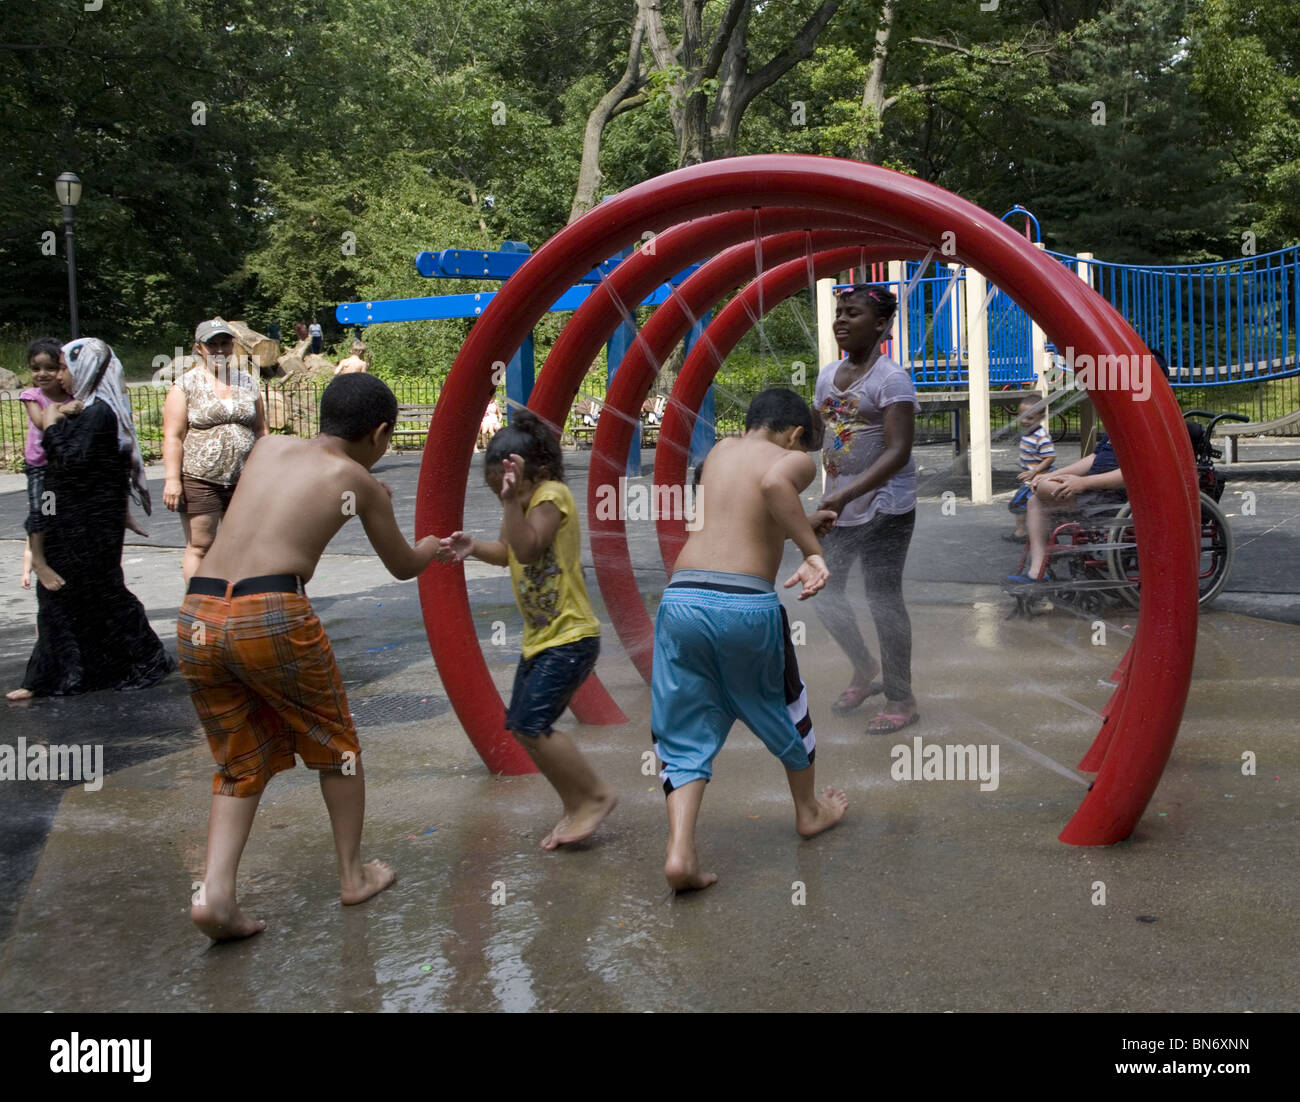 Children cool off in the water area on a hot summer day at the 3rd St. playground in Prospect Park, Brooklyn, NY. - Stock Image